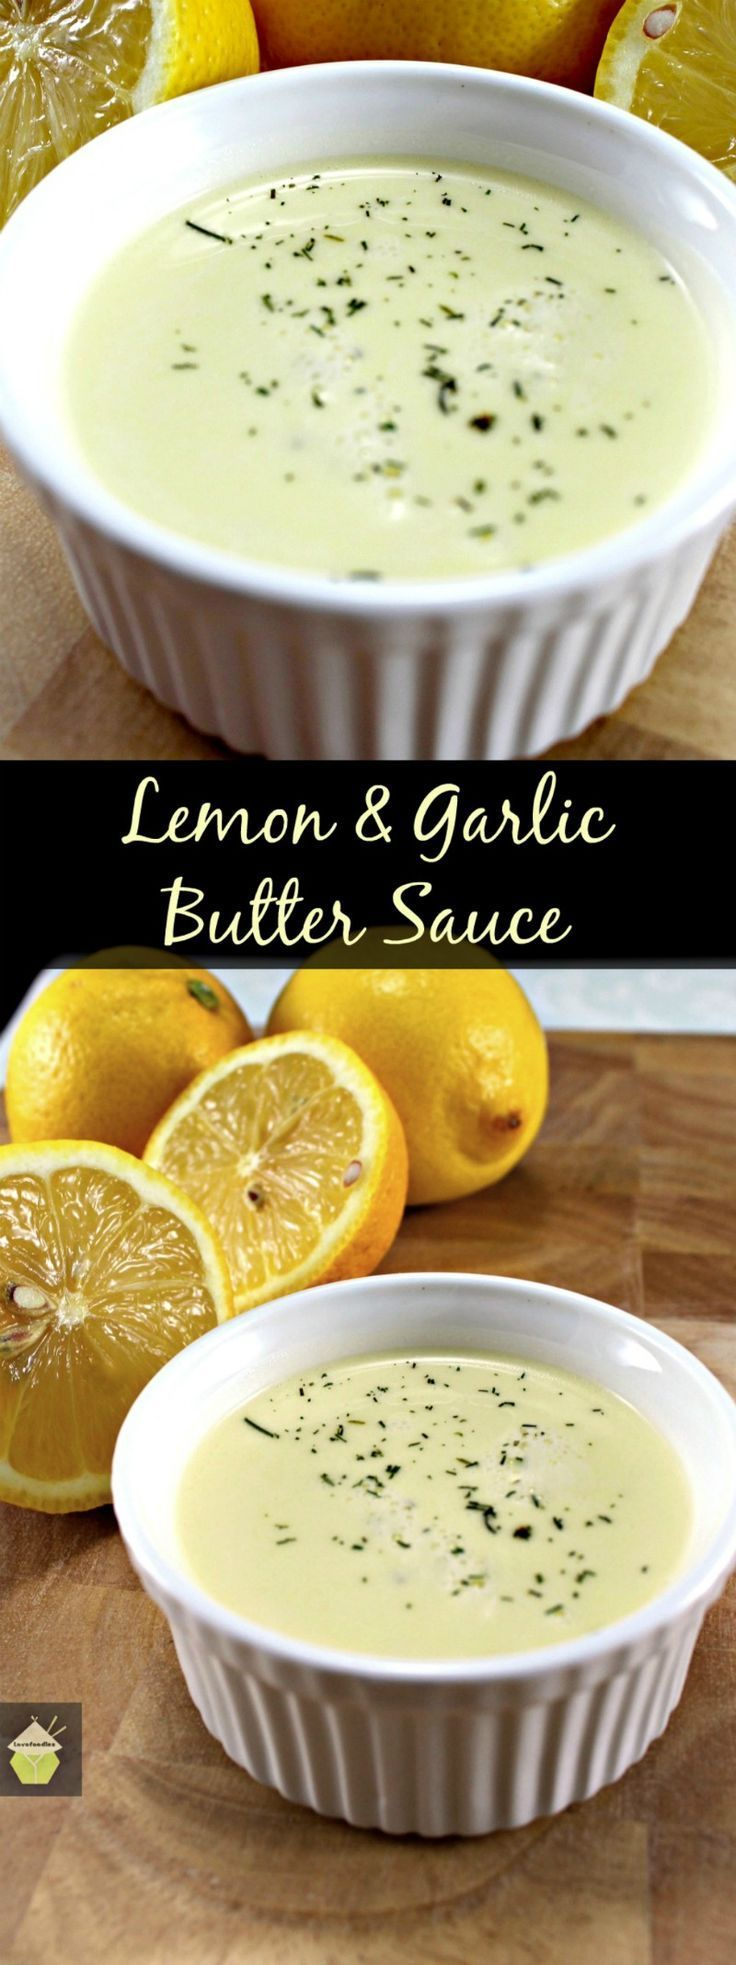 Lemon and garlic butter sauce this is delicious served for Creamy sauce served with fish